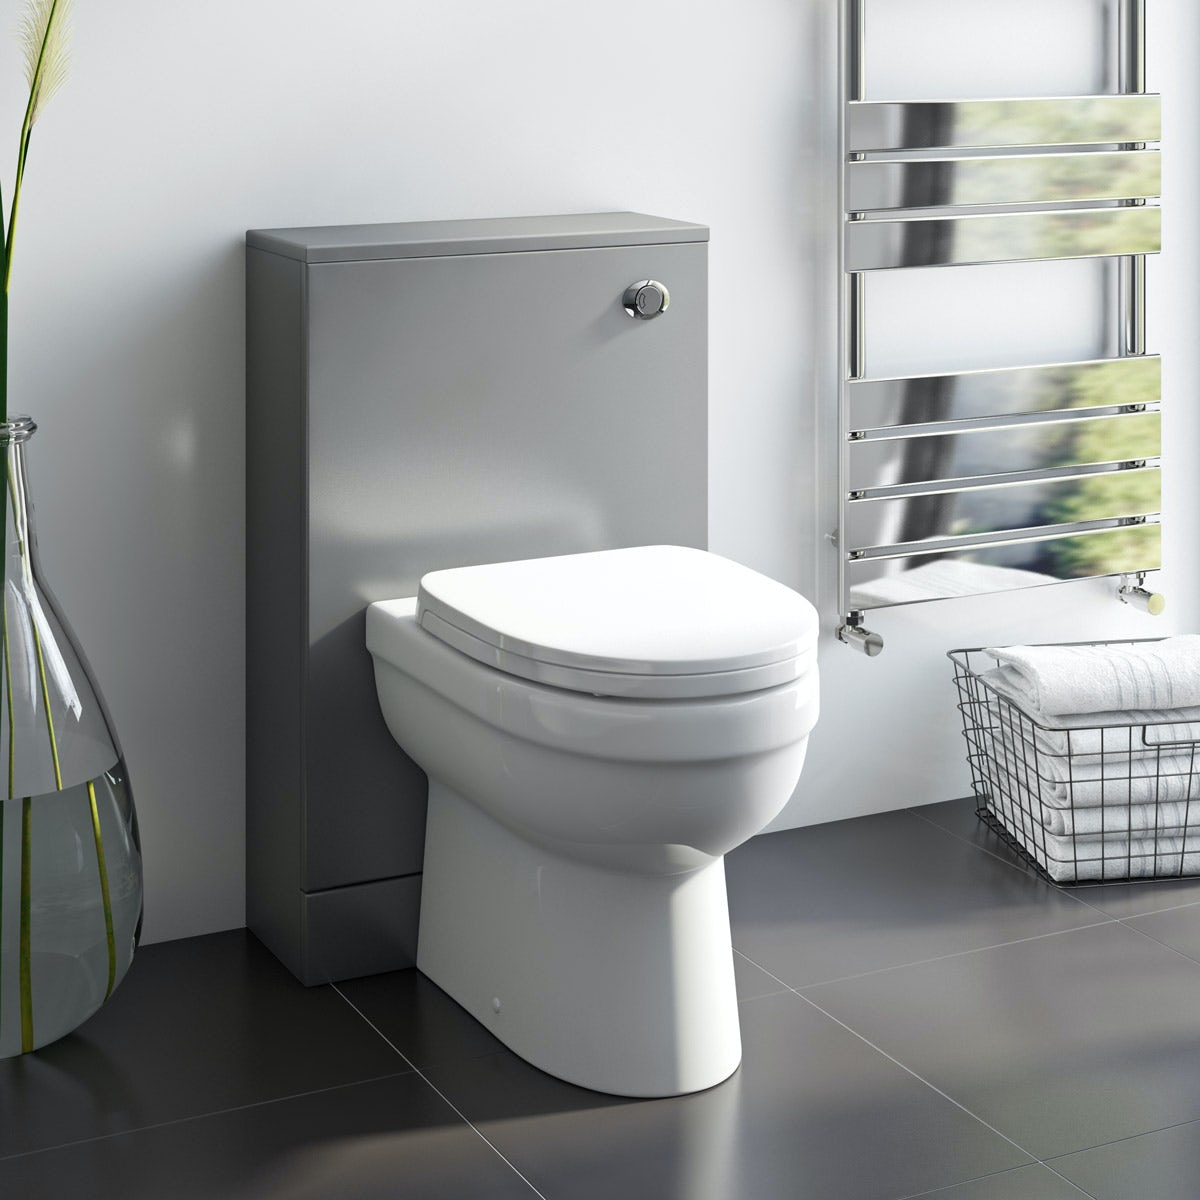 Orchard Derwent Stone Grey Back to Wall Unit and Eden Toilet with Soft Close seat